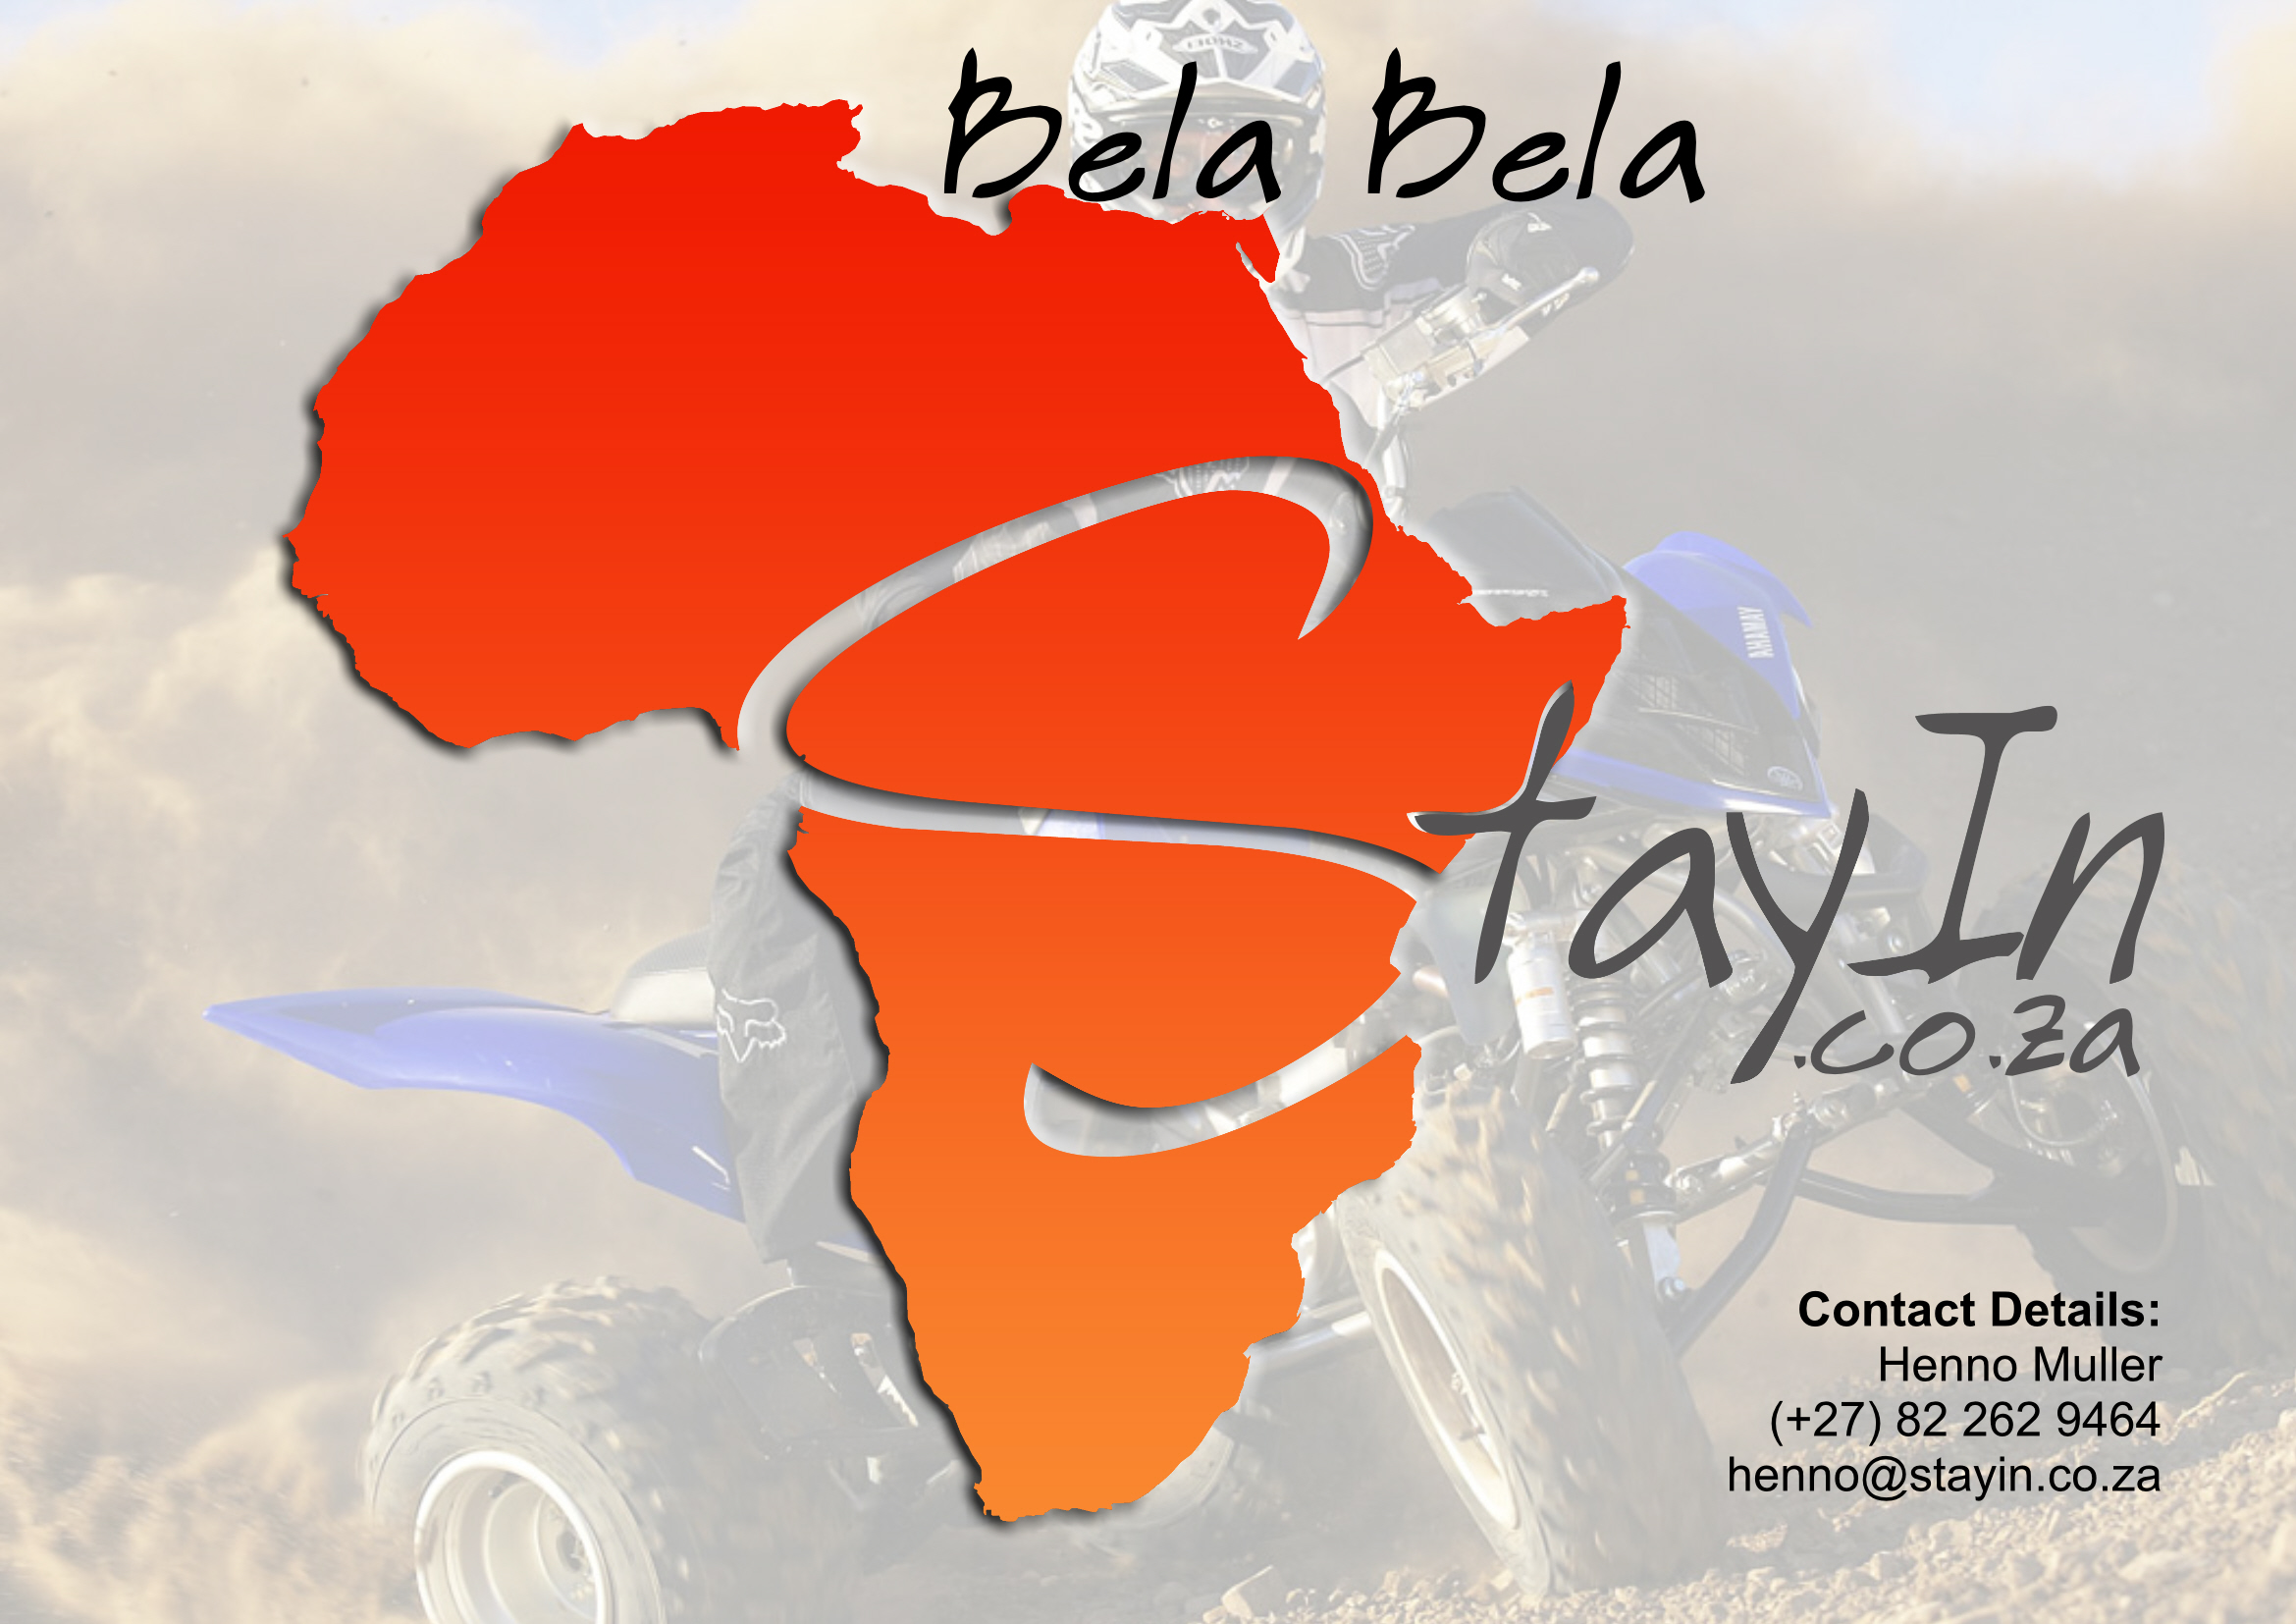 Peri Peri Creative-Stay-in flyer template-Bela Bela quadbike.2